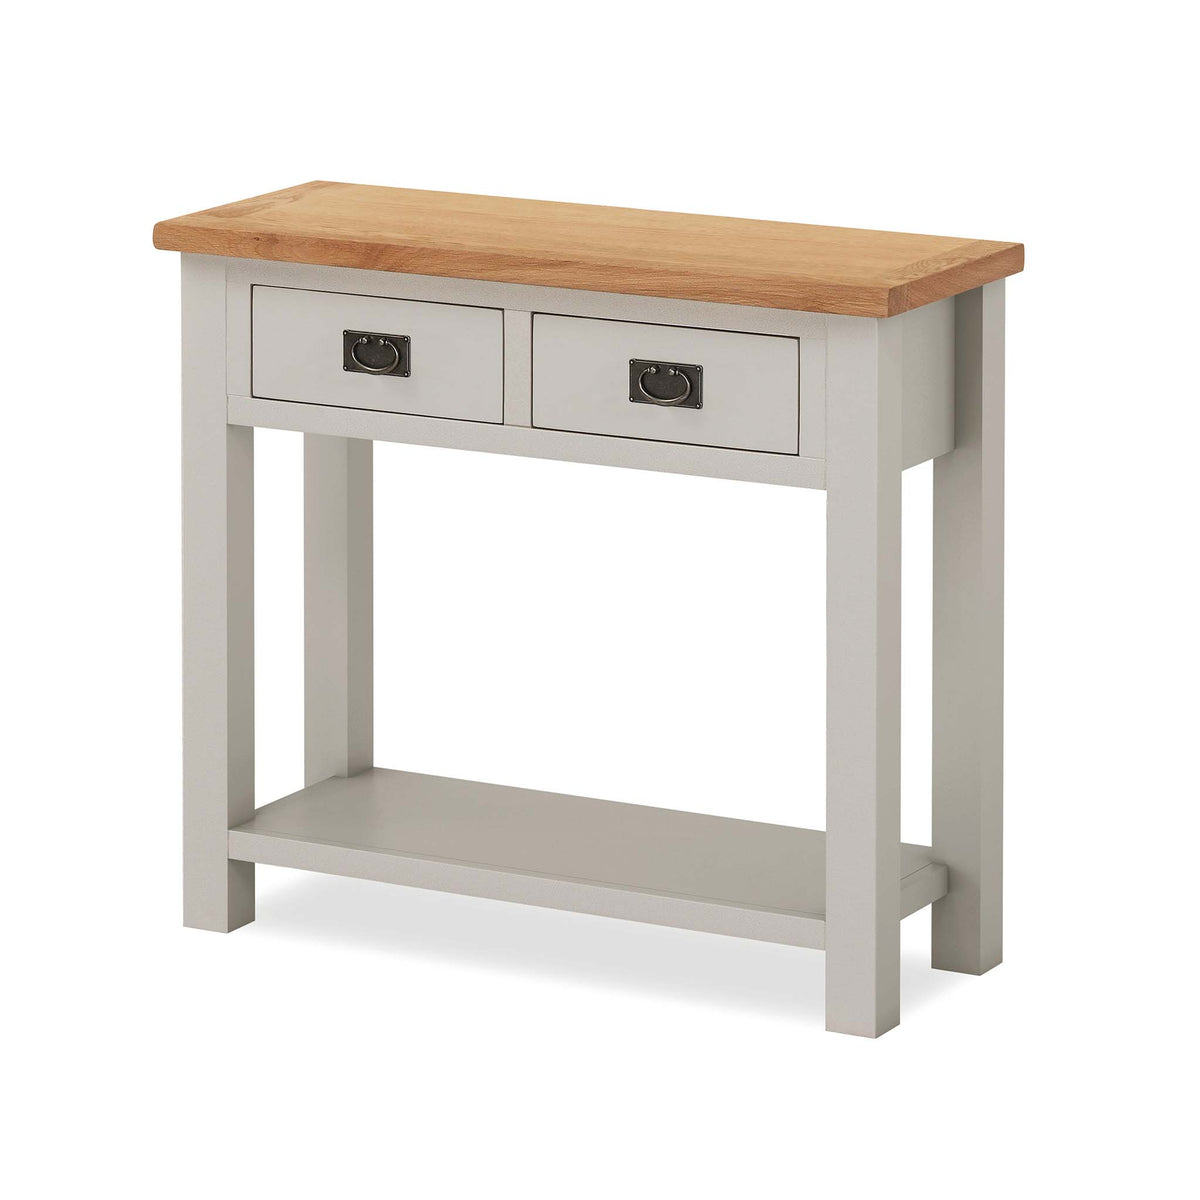 Dorset Stone Grey Hallway Table with 2 Drawers